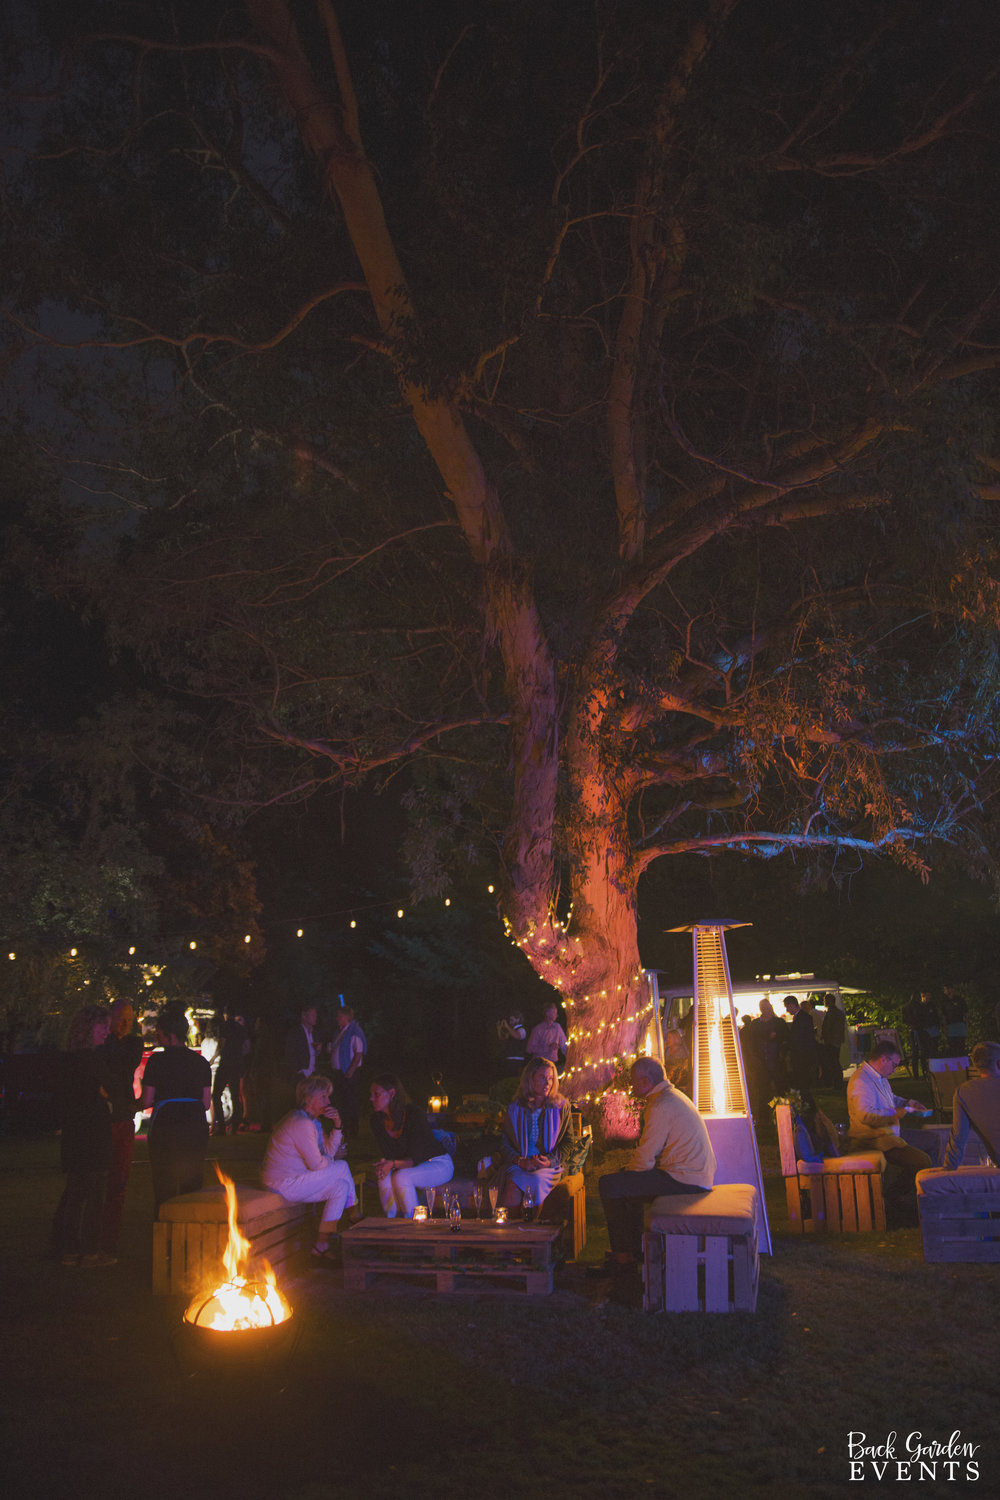 Garden Party Festival - Back Garden Events & Weddings